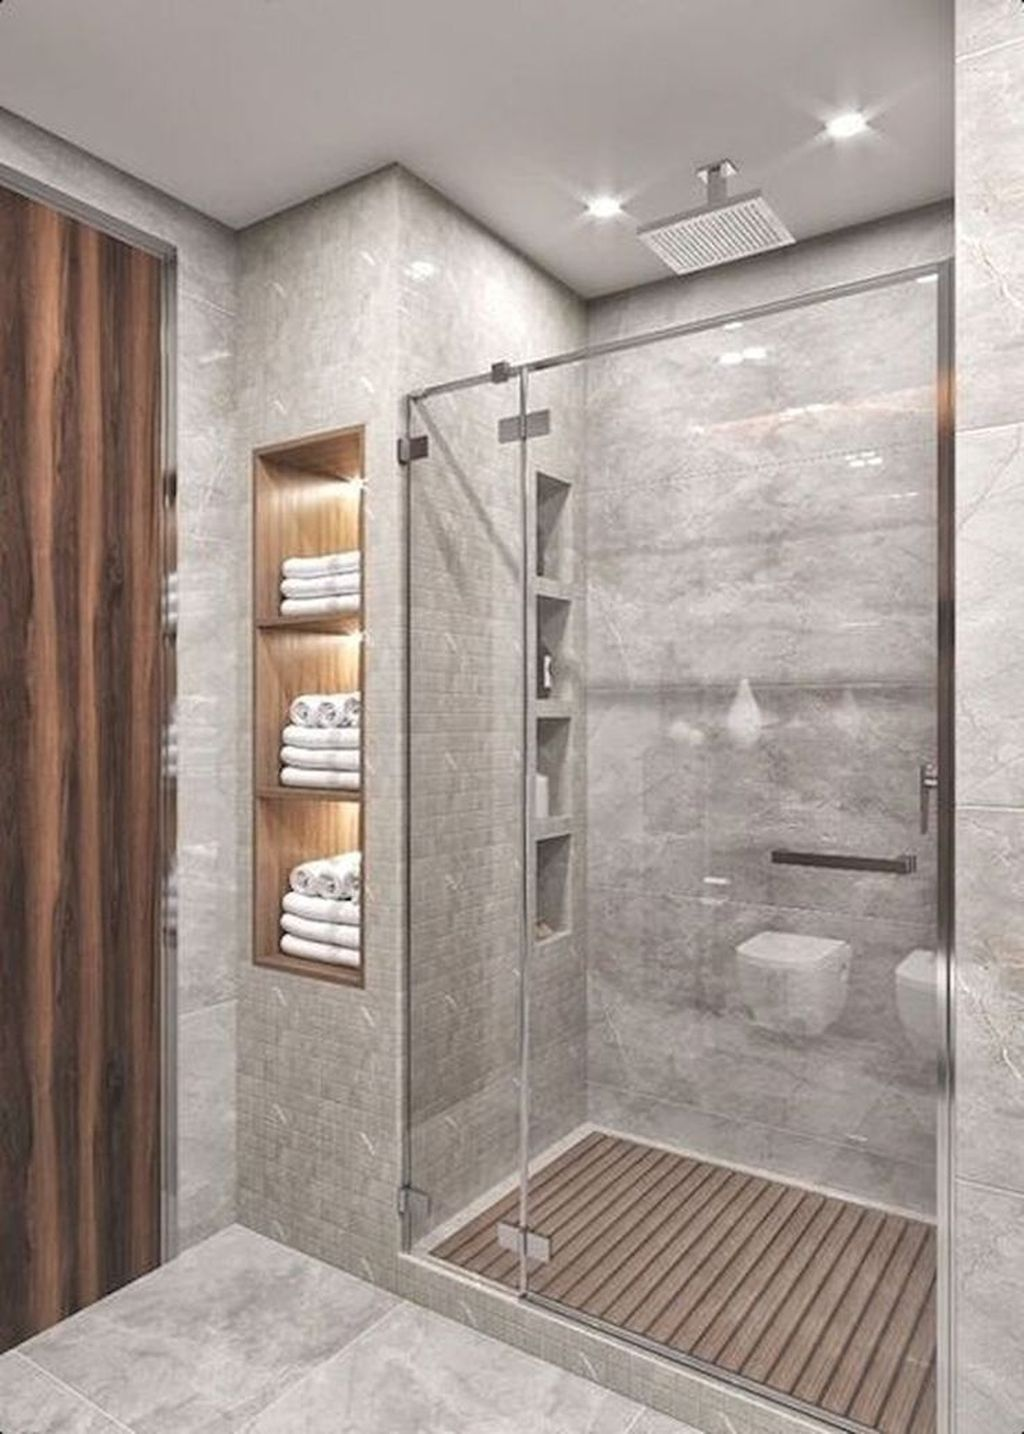 43 Classy Master Bathroom Design Ideas For Your Home To Copy In 2020 Small Bathroom Makeover Small Bathroom Remodel Bathroom Remodel Master